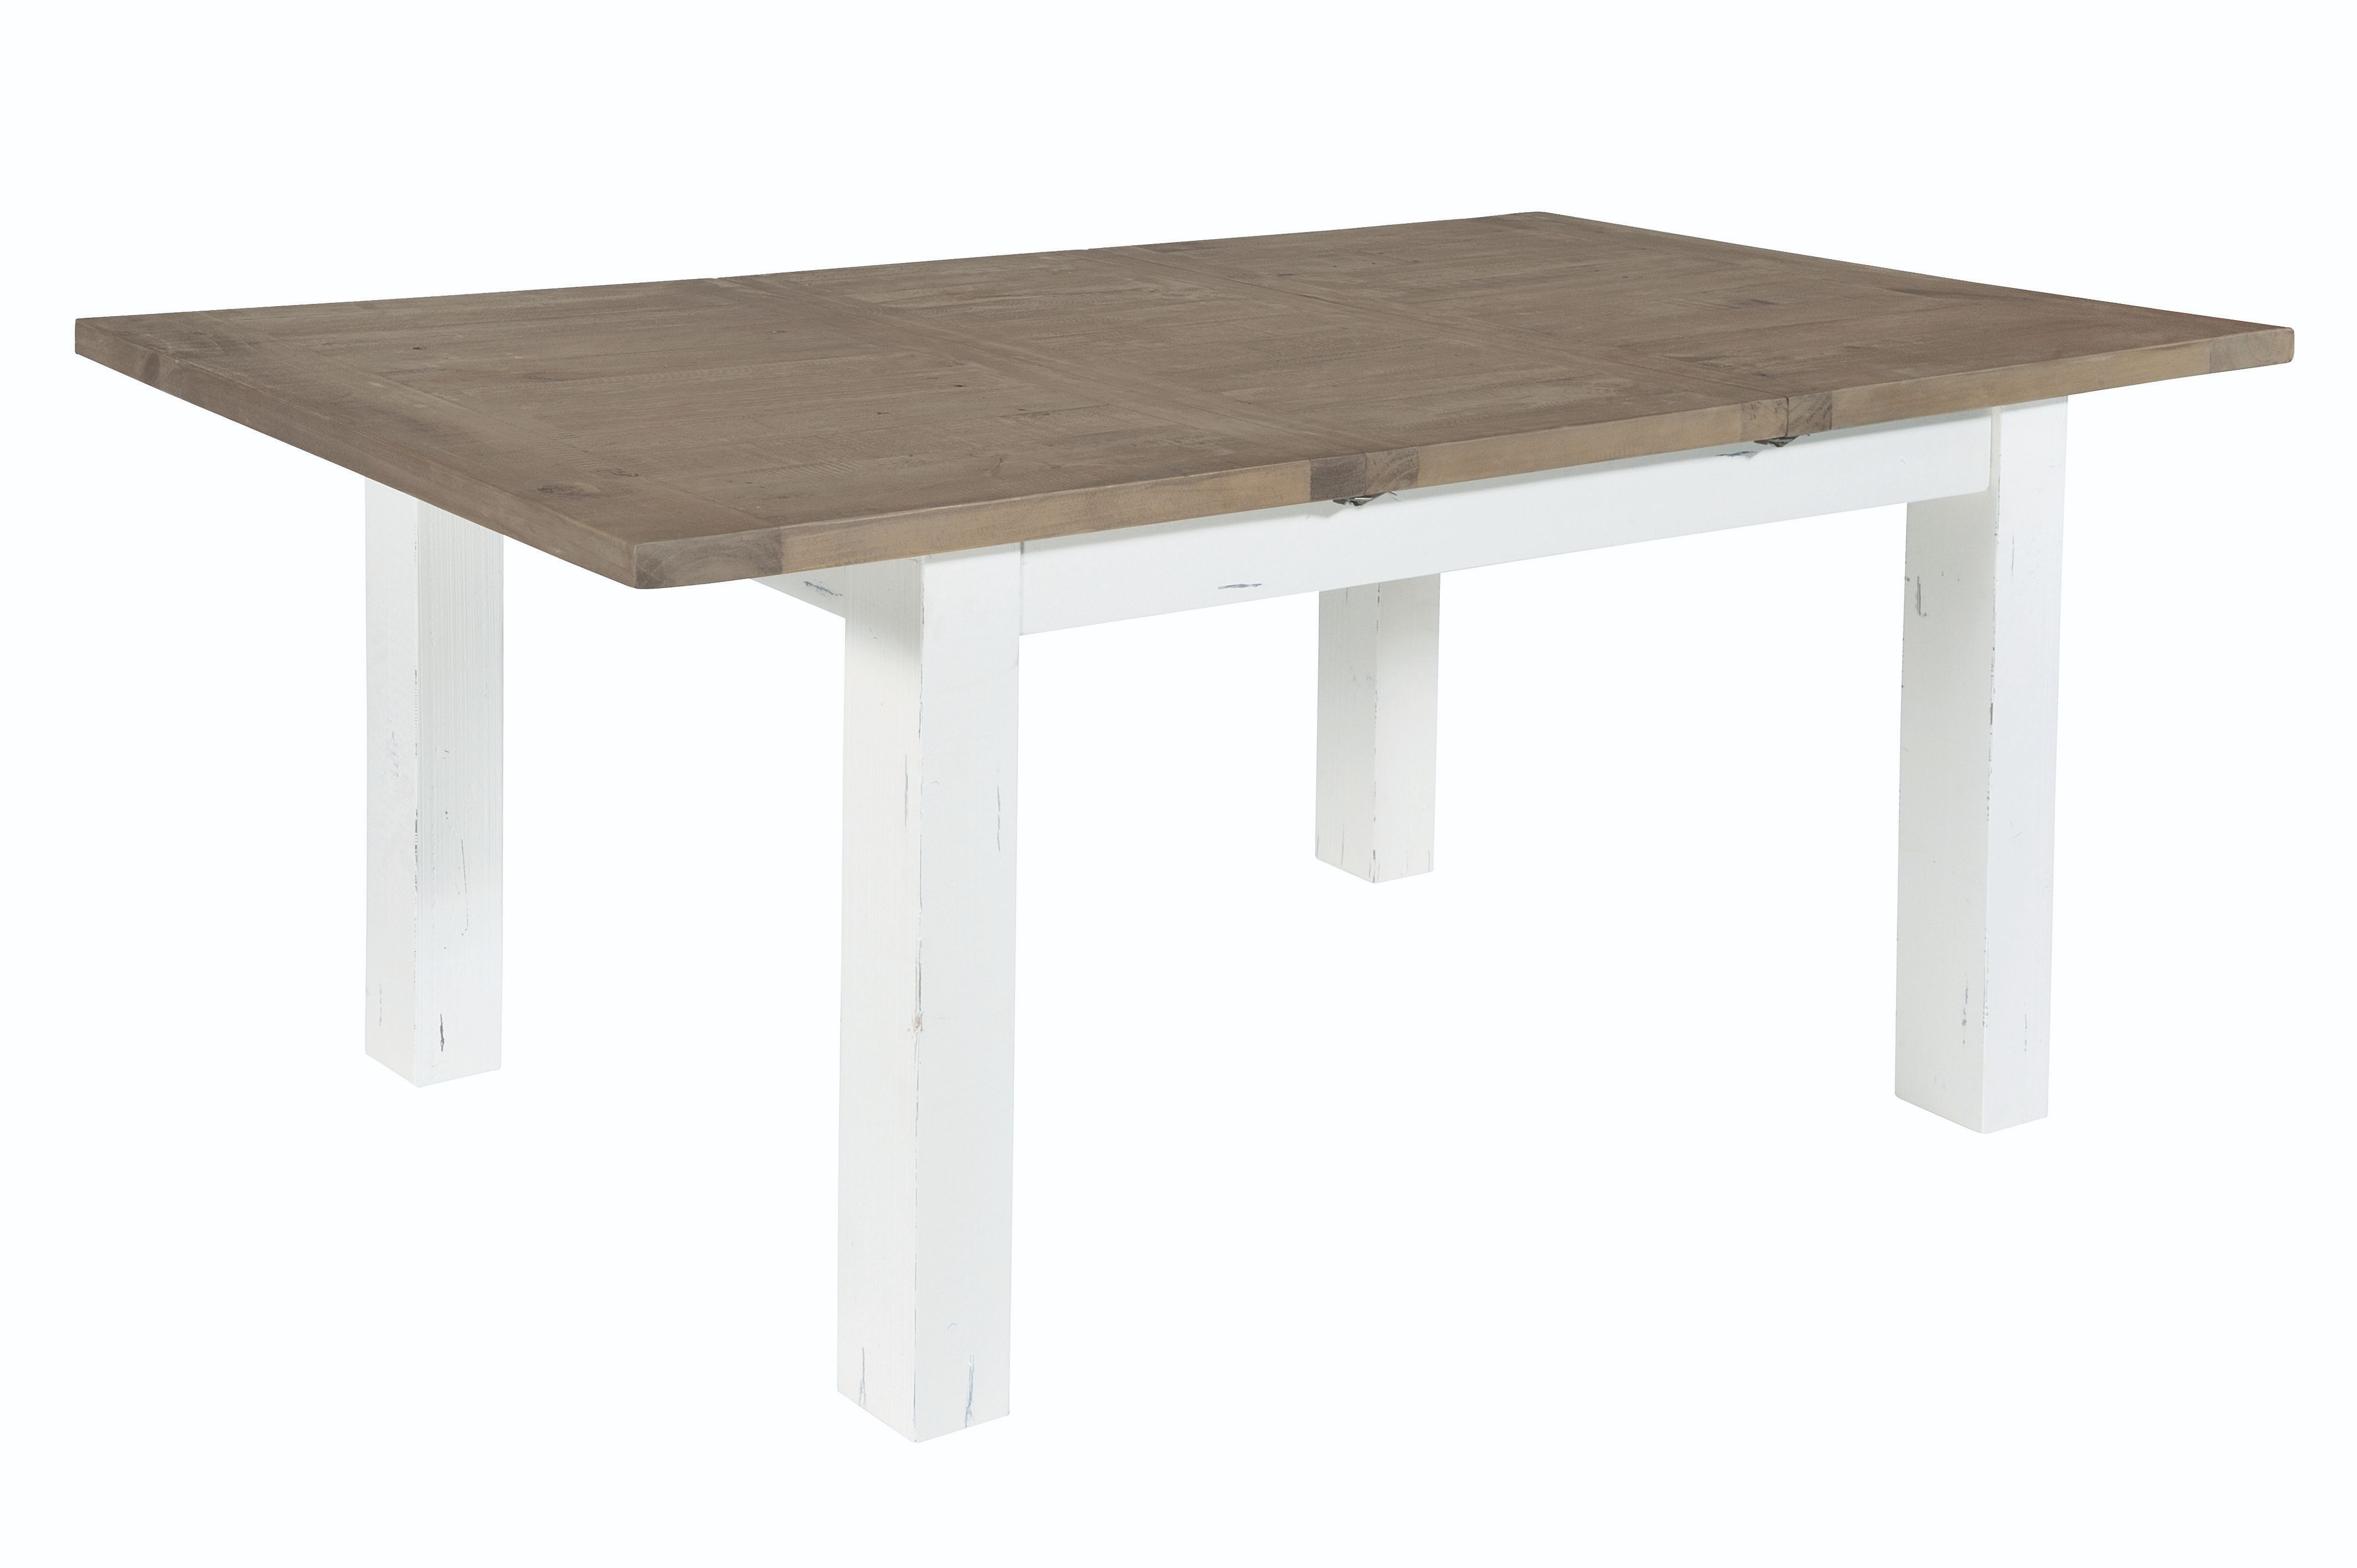 PURBECK 140 EXTENDING DINING TABLE Distressed Paint & Driftwood